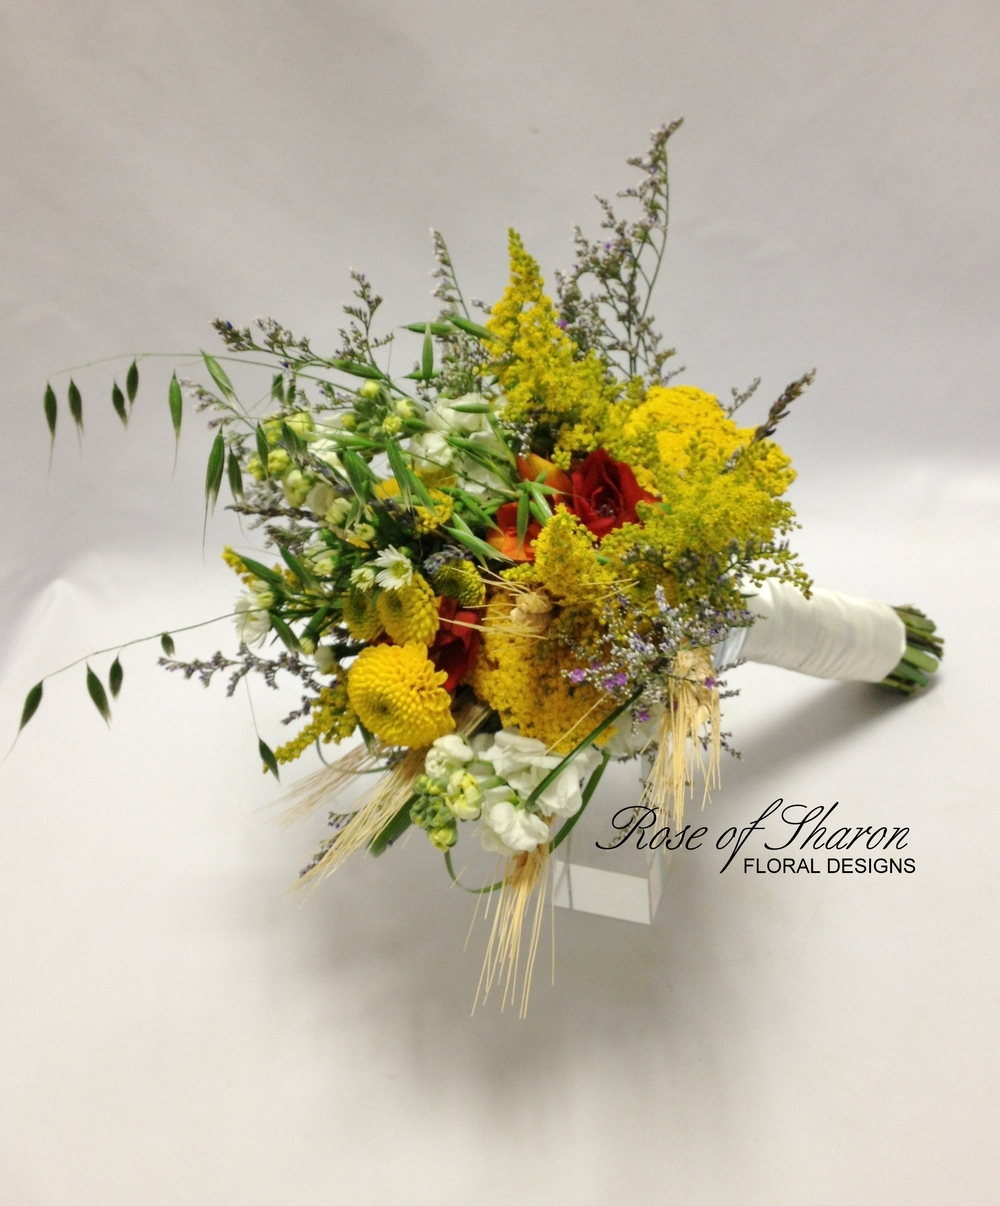 Yellow organic bouquet with mums, solidago & wheat. Rose of Sharon Floral Designs